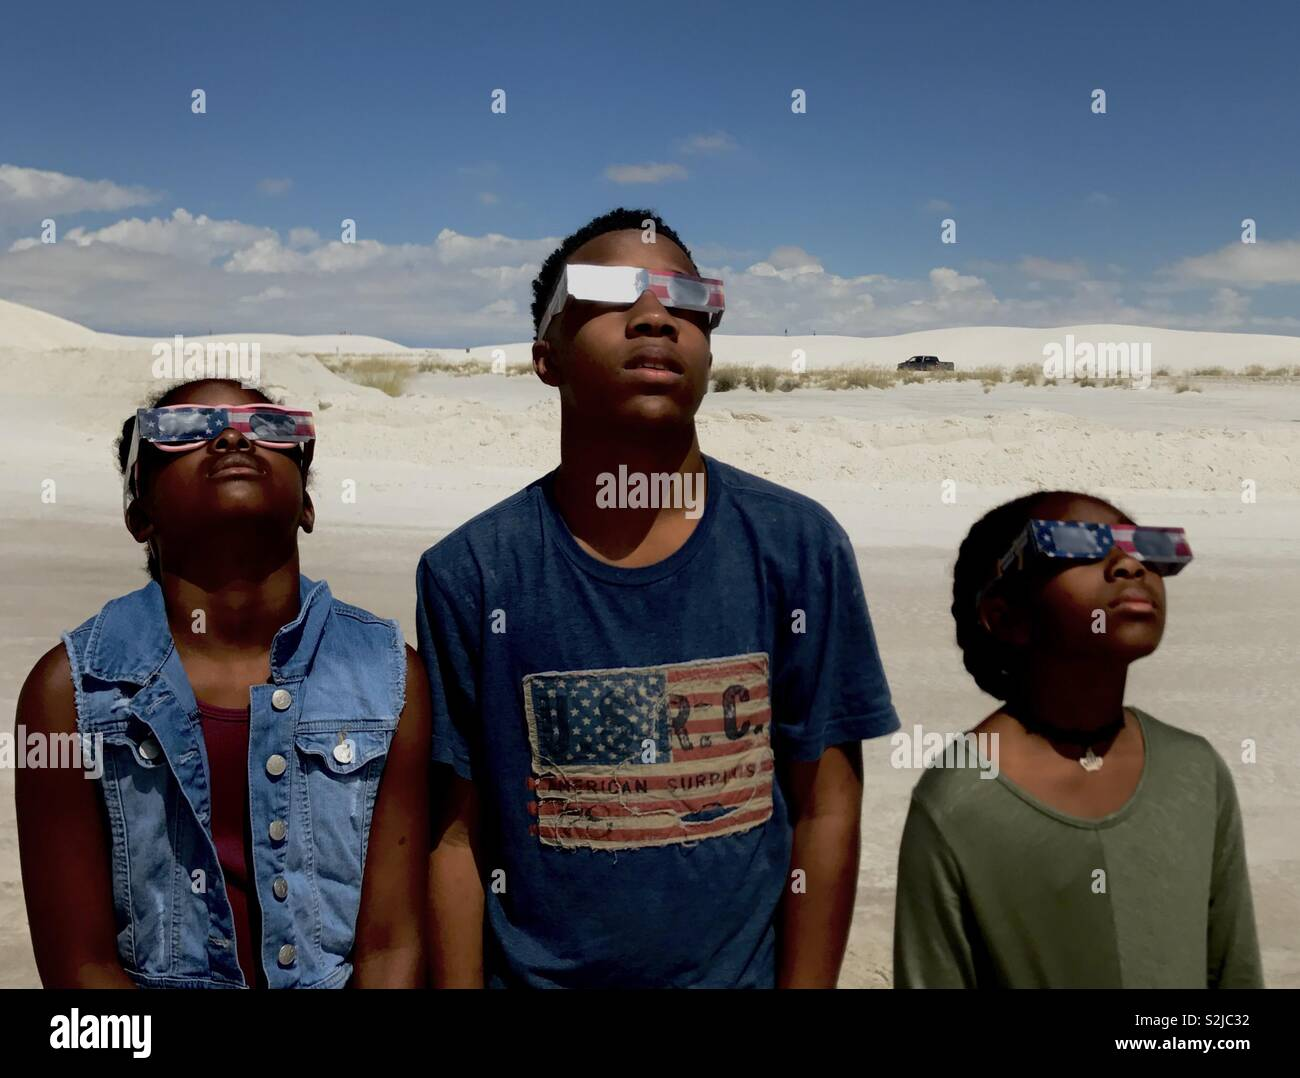 Eclipse of 2017 viewed at White Sands National Park, Alamogordo, New Mexico. - Stock Image